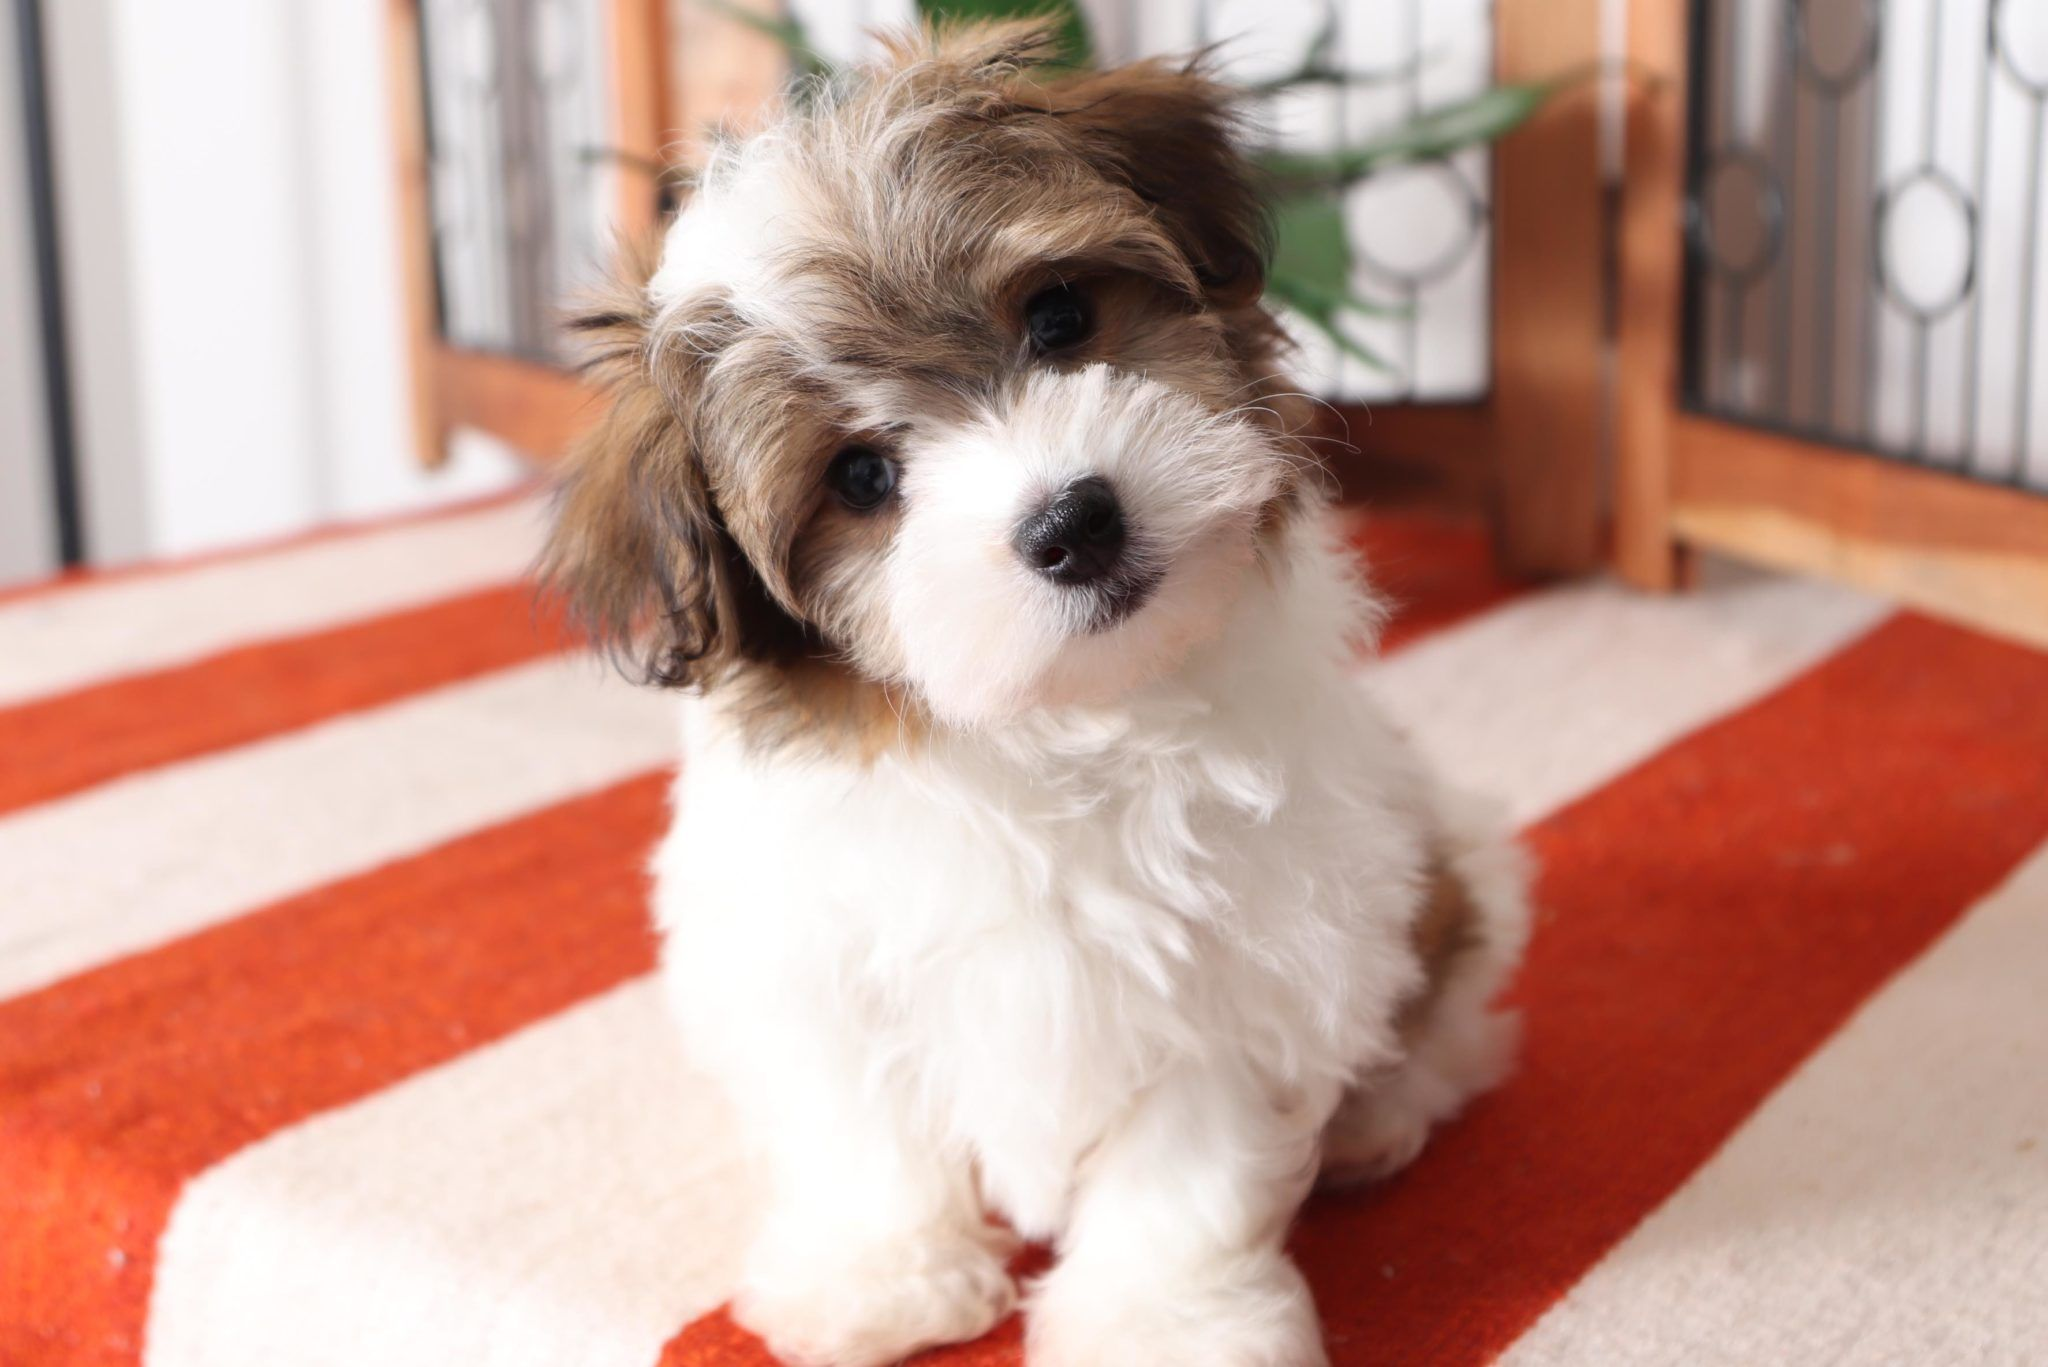 Burt Playful Little Male ACA Havanese Puppy Puppies